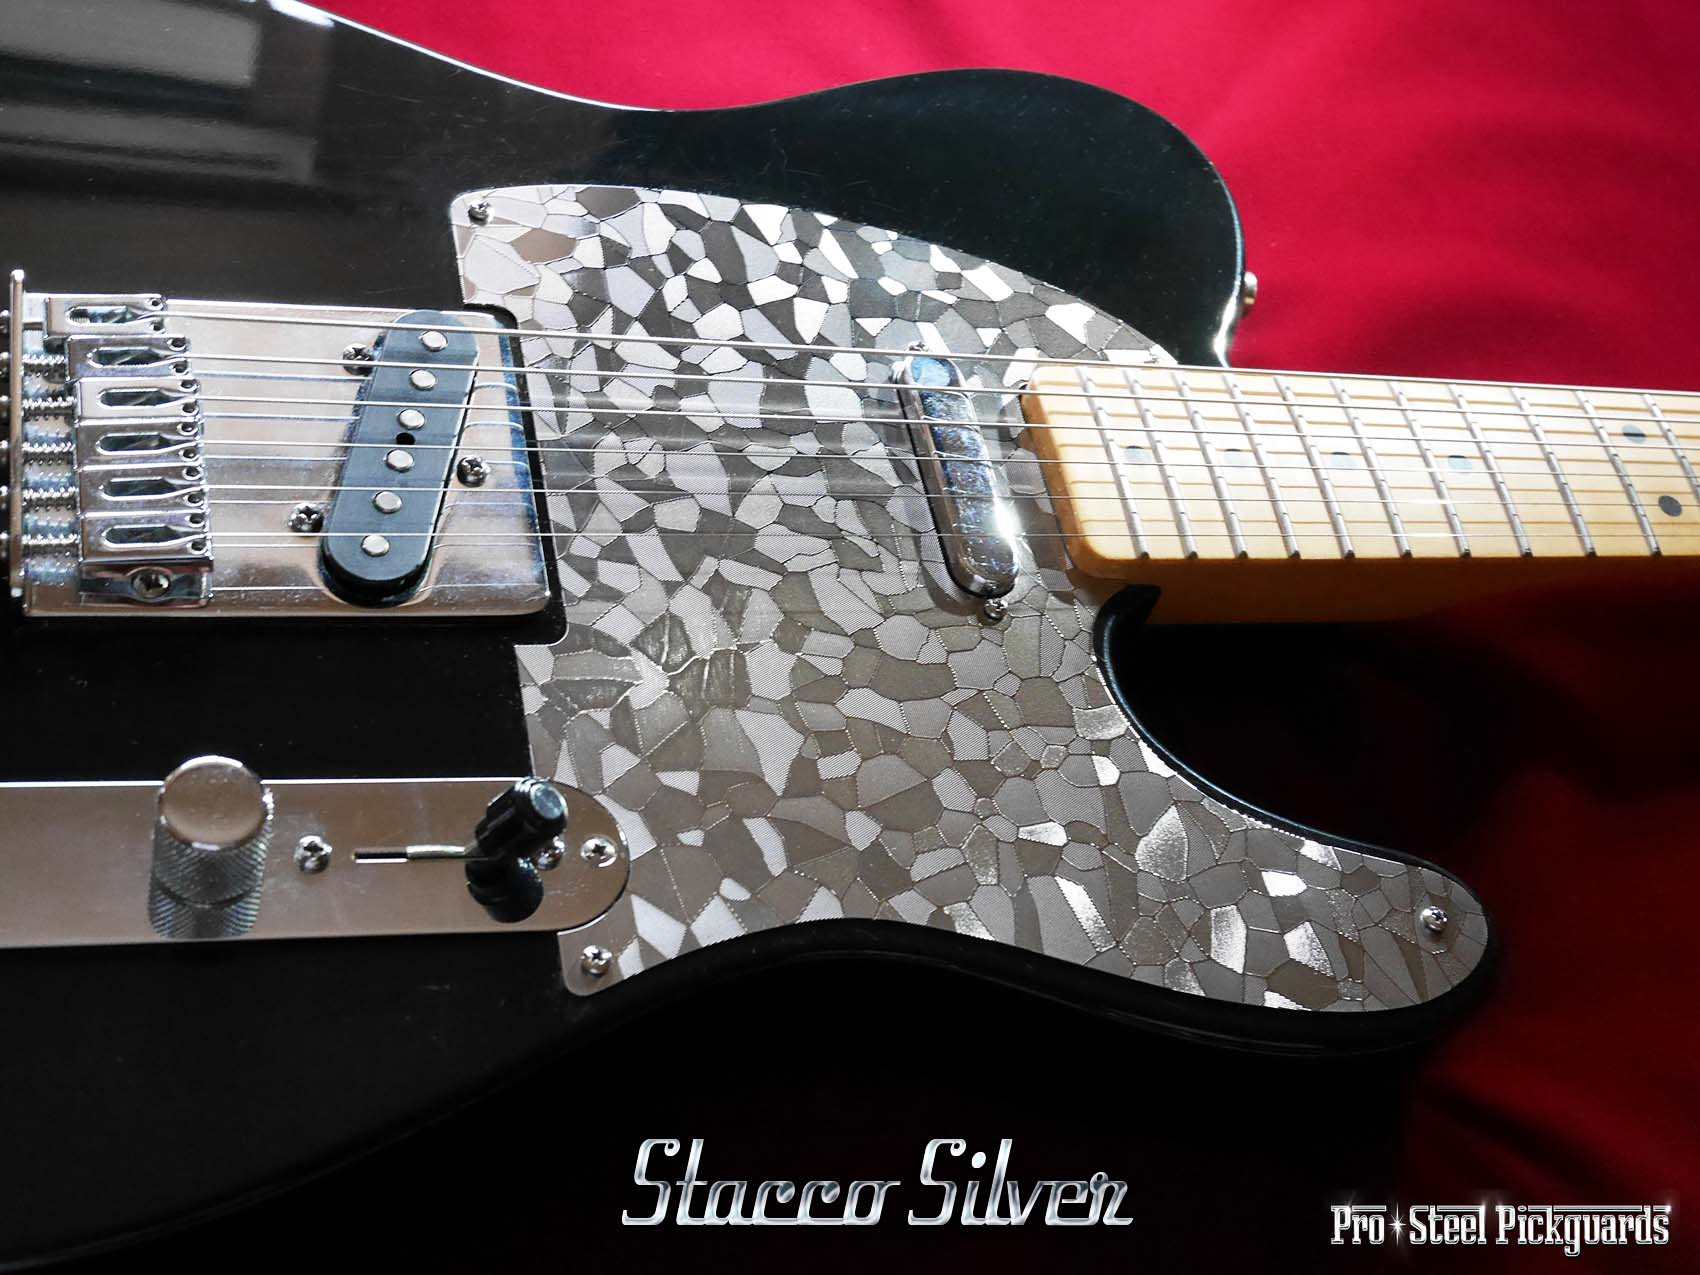 Fender Telecaster Stacco Silver Pickguard Metal Custom Perfect Neat